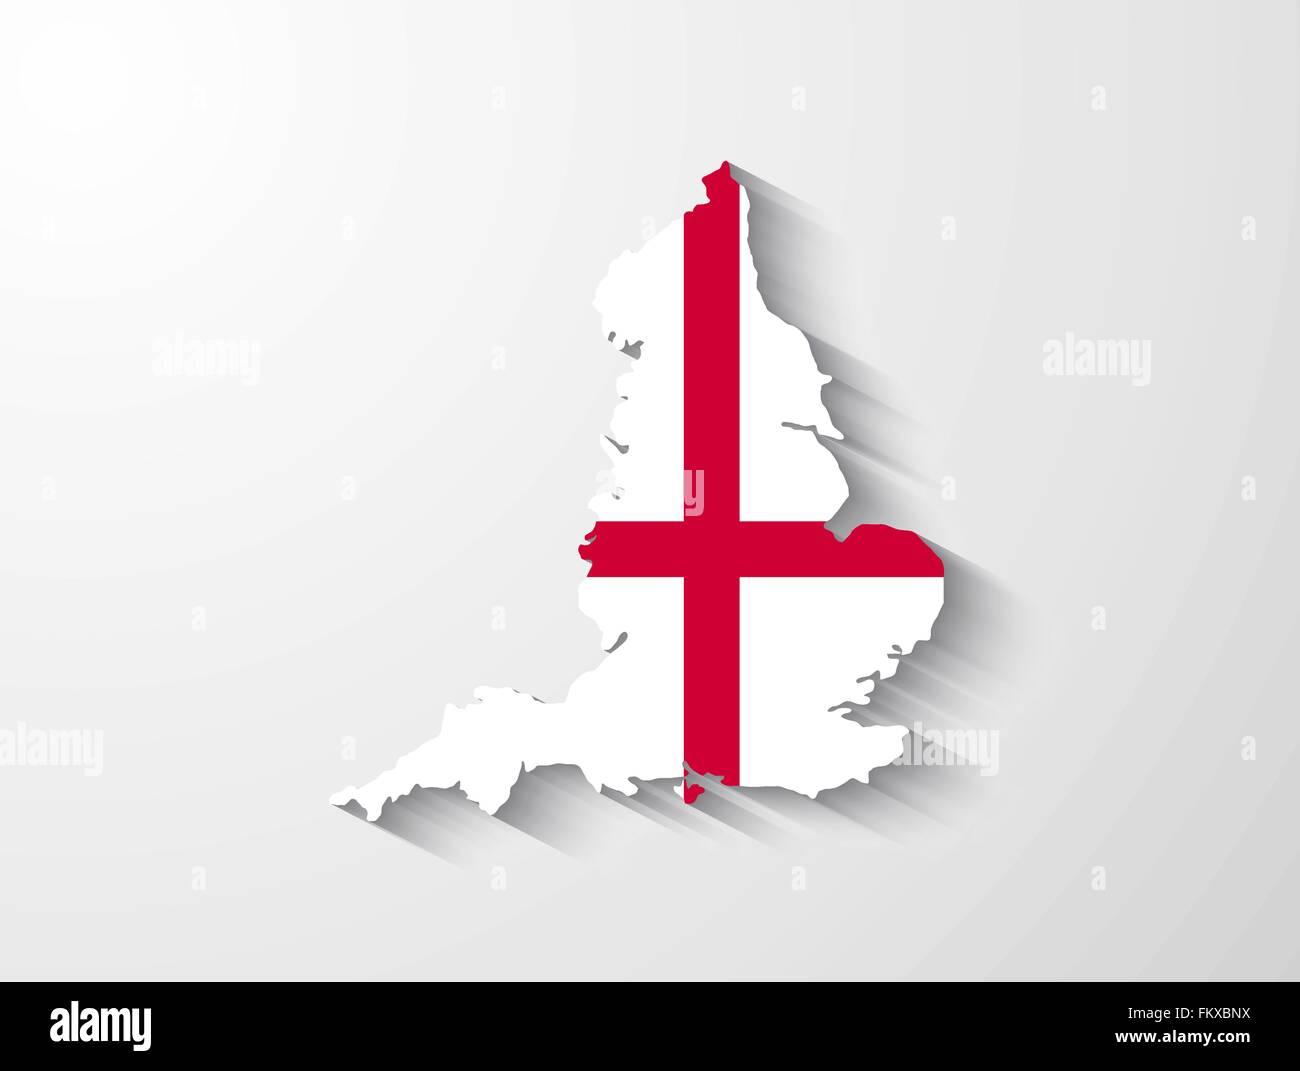 England Country Map With Flag And Shadow Effect Stock